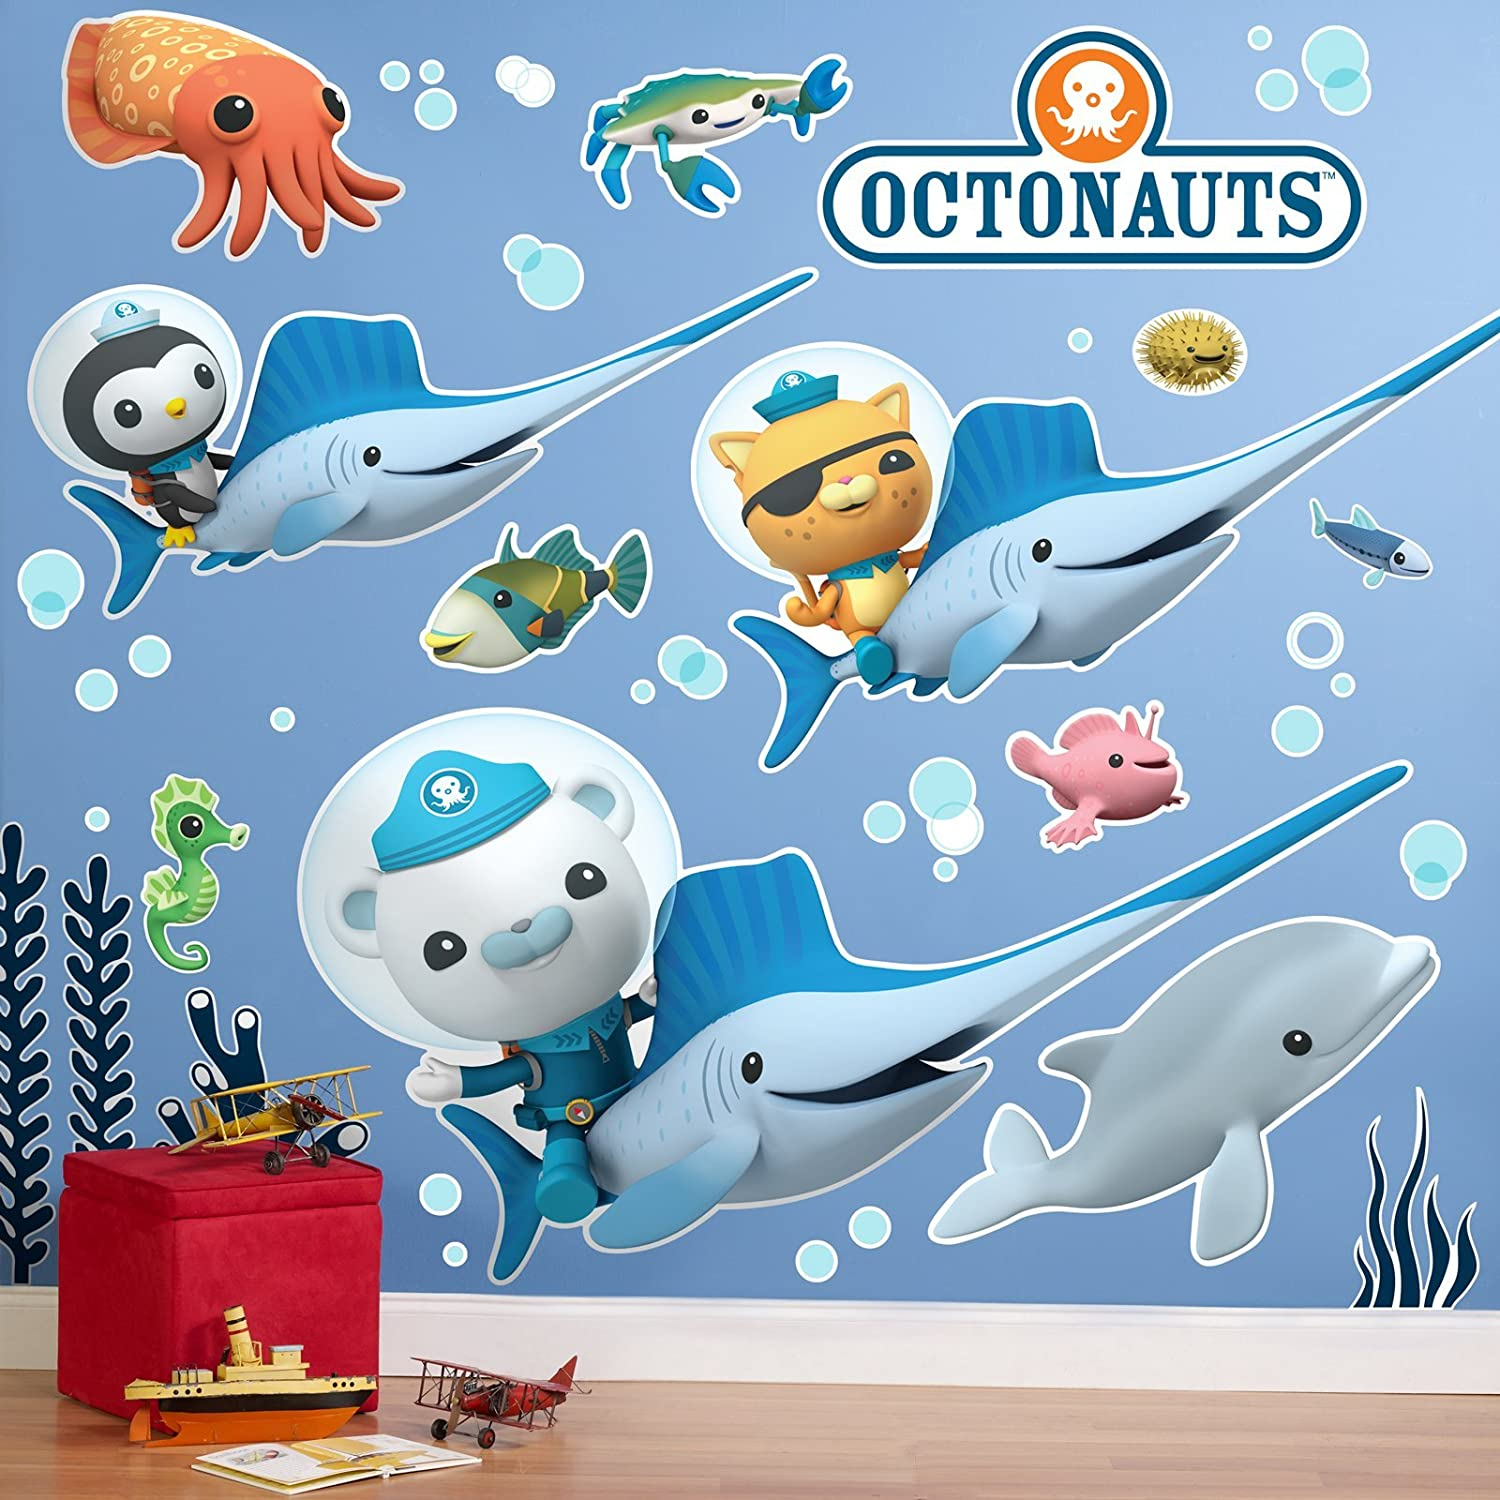 Octonauts Bedroom Wallpaper The Octonauts Room Decor Giant Wall Decals By Birthdayexpress